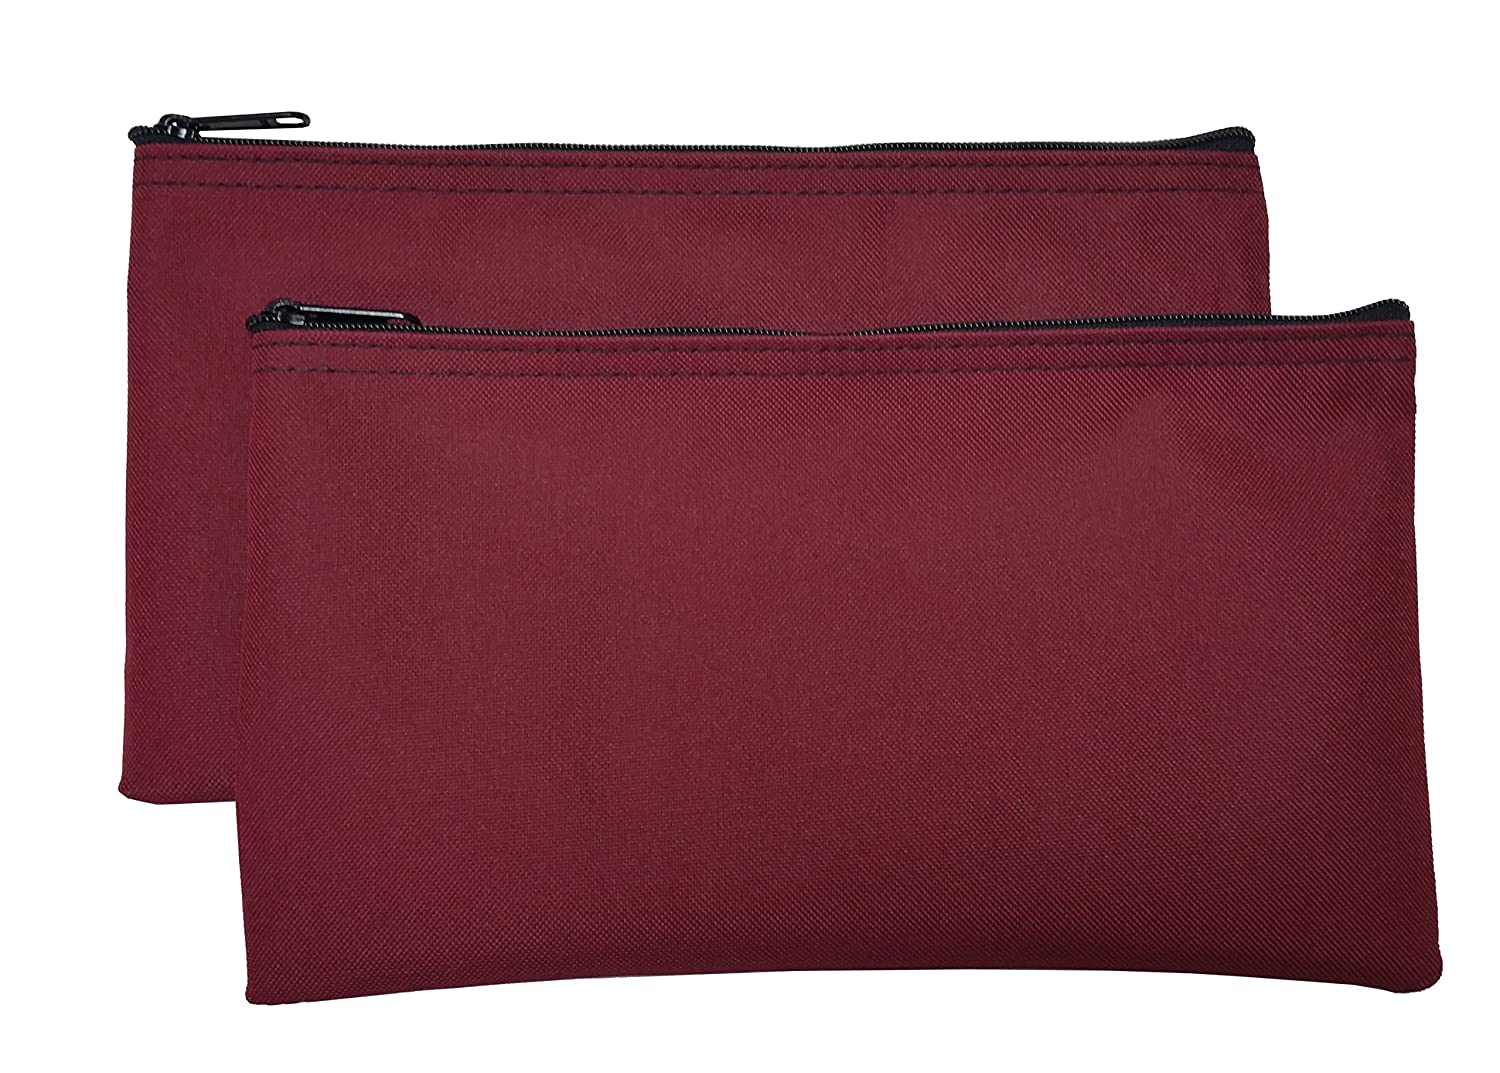 Zipper Bags Poly Cloth Value Package of 2 Bags (Burgundy) Cardinal Bag Supplies 76161003